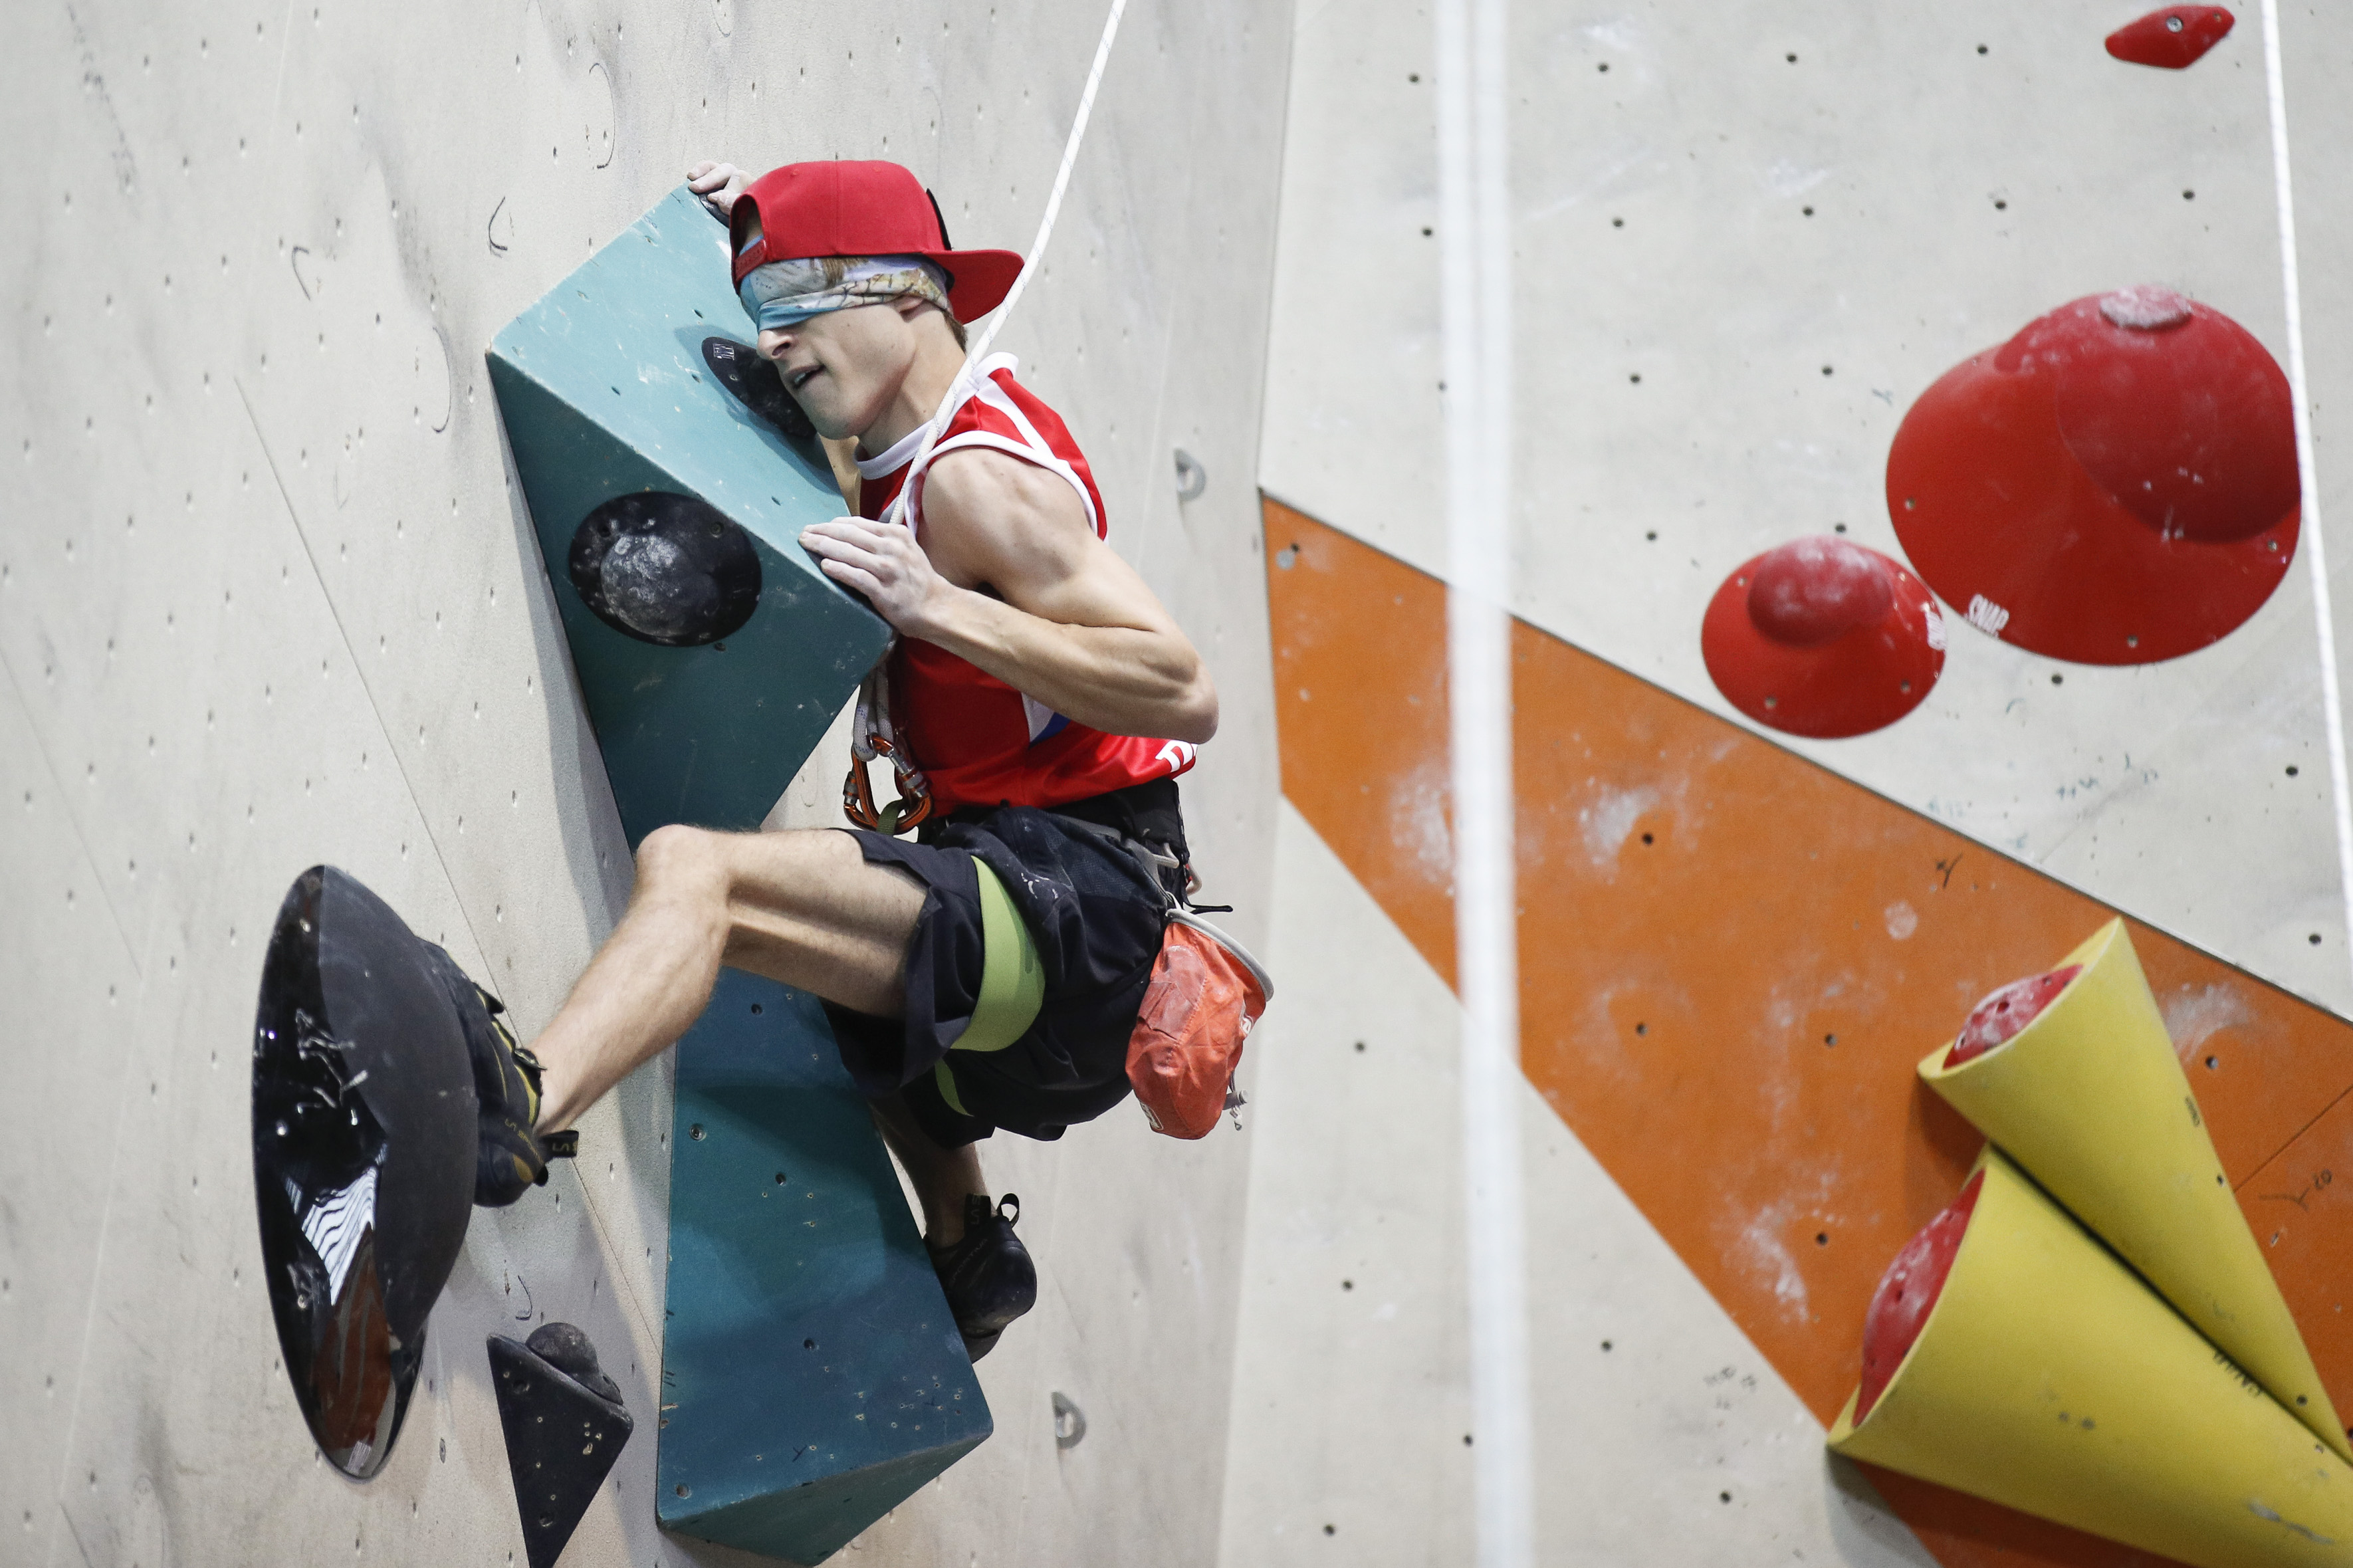 210915 IFSC News Paraclimbing qualifications kicked off in Moscow